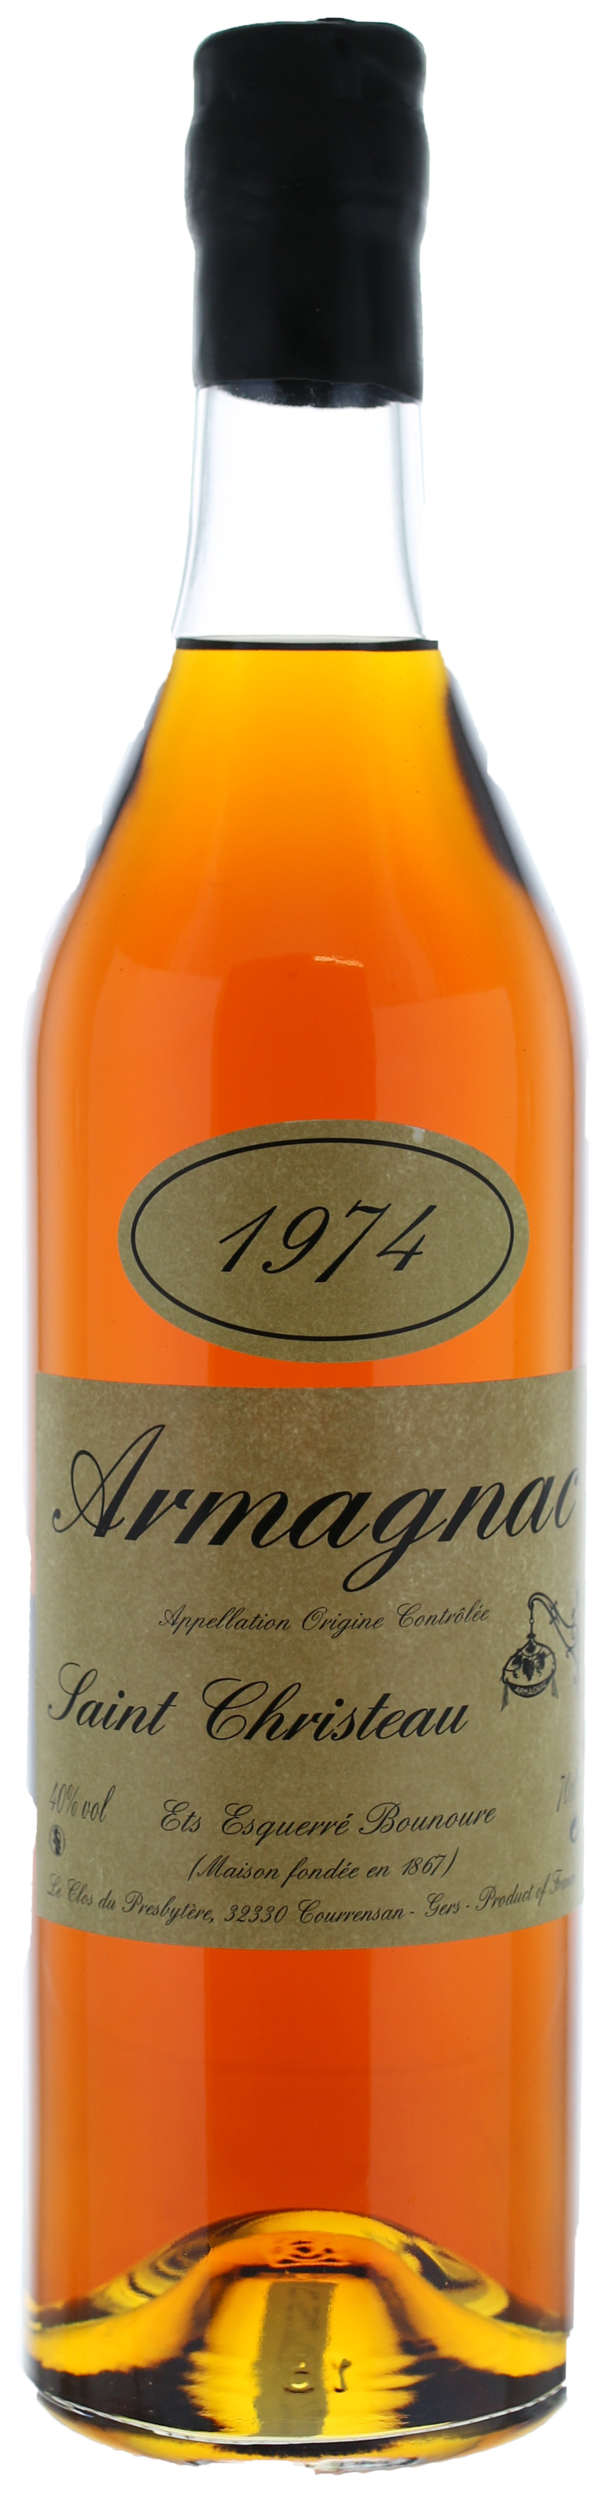 ARMAGNAC - 1974 - Saint-Christeau - 40° - G. Miclo